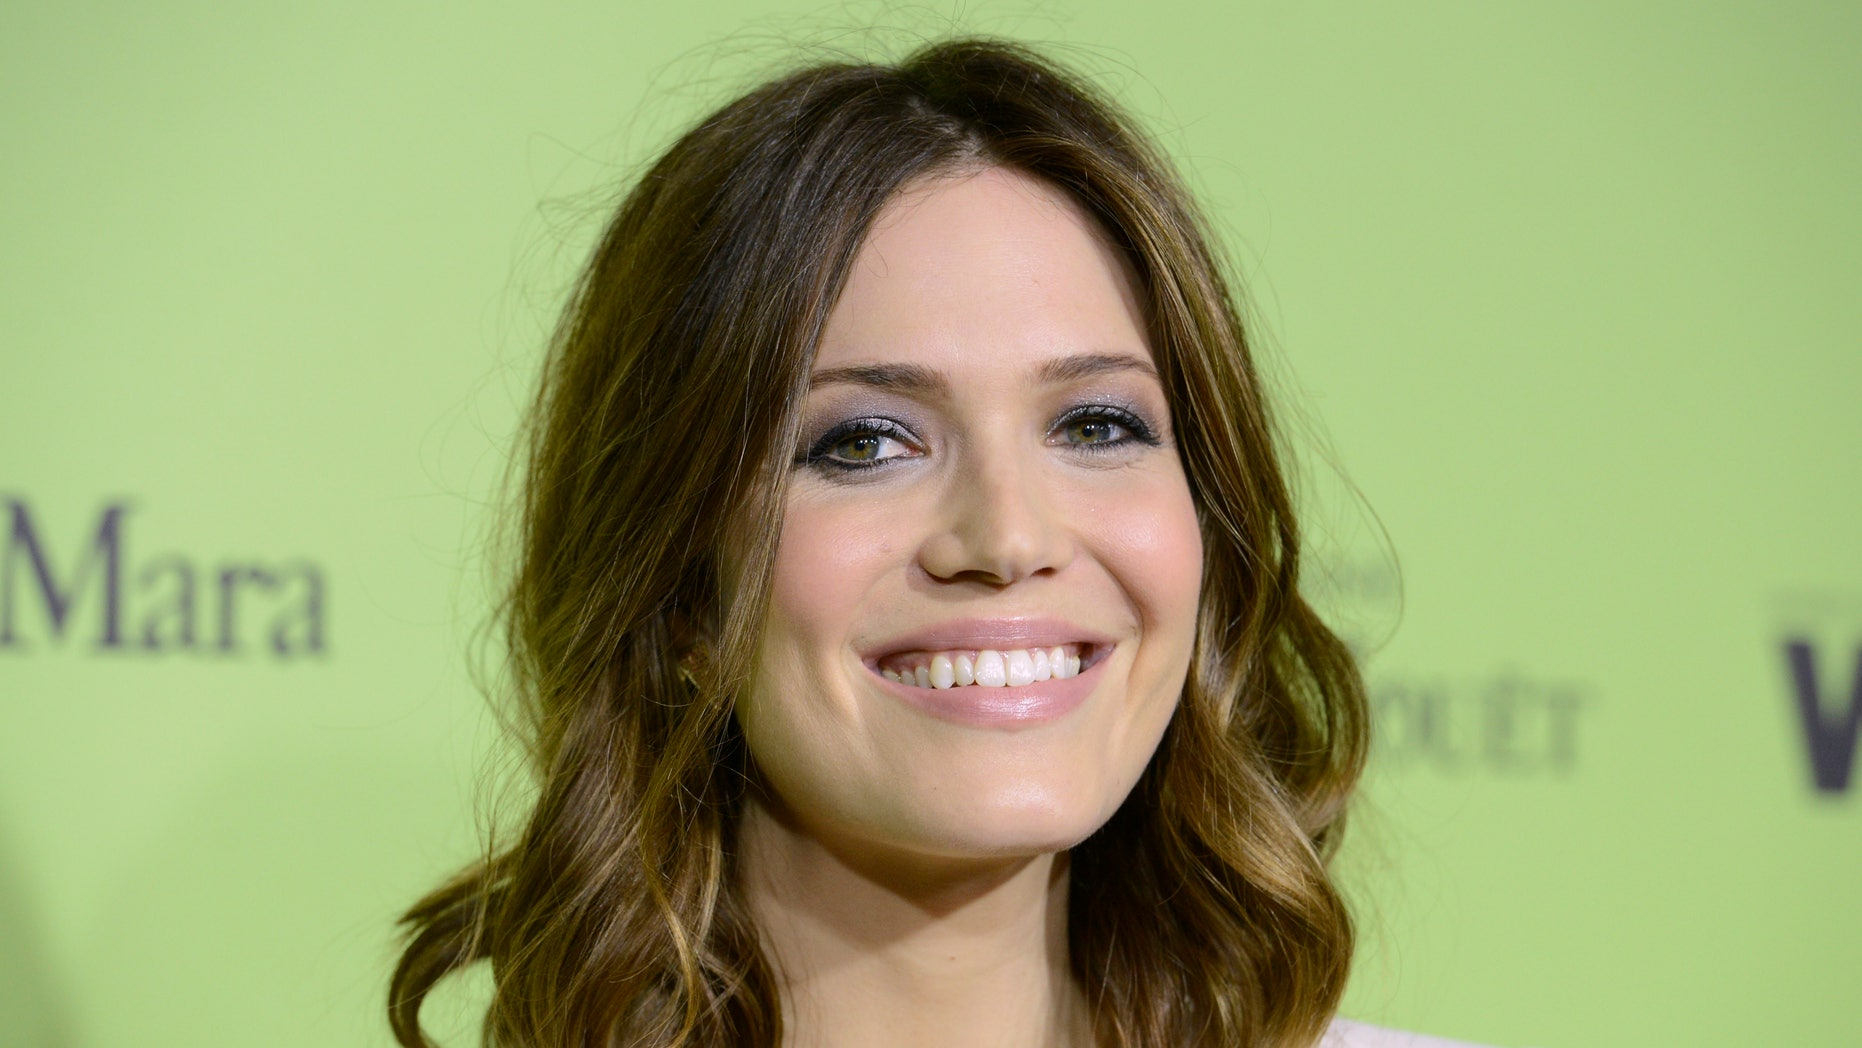 Actress Mandy Moore attends the Women in Film Pre-Oscar Cocktail Party in West Hollywood, California February 28, 2014. REUTERS/Phil McCarten (UNITED STATES - Tags: ENTERTAINMENT) - RTR3FUJR